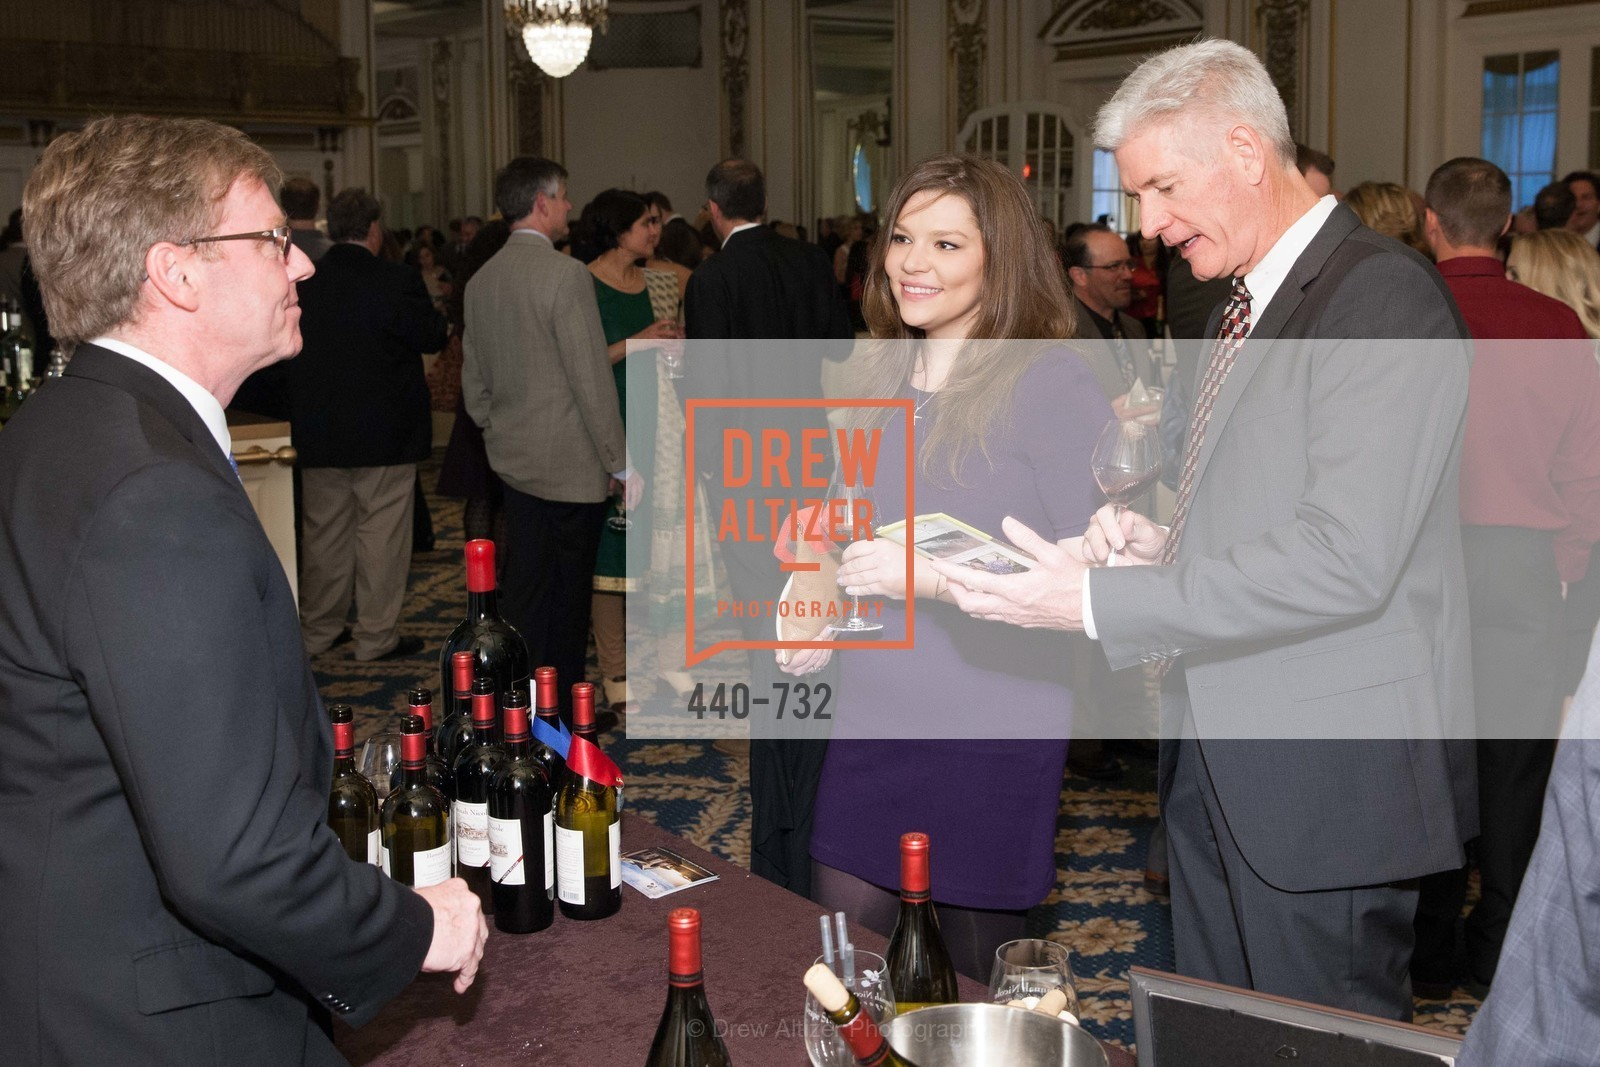 Extras, CROHN'S AND COLITIS FOUNDATION'S 18th Annual California Wine Classic, May 16th, 2015, Photo